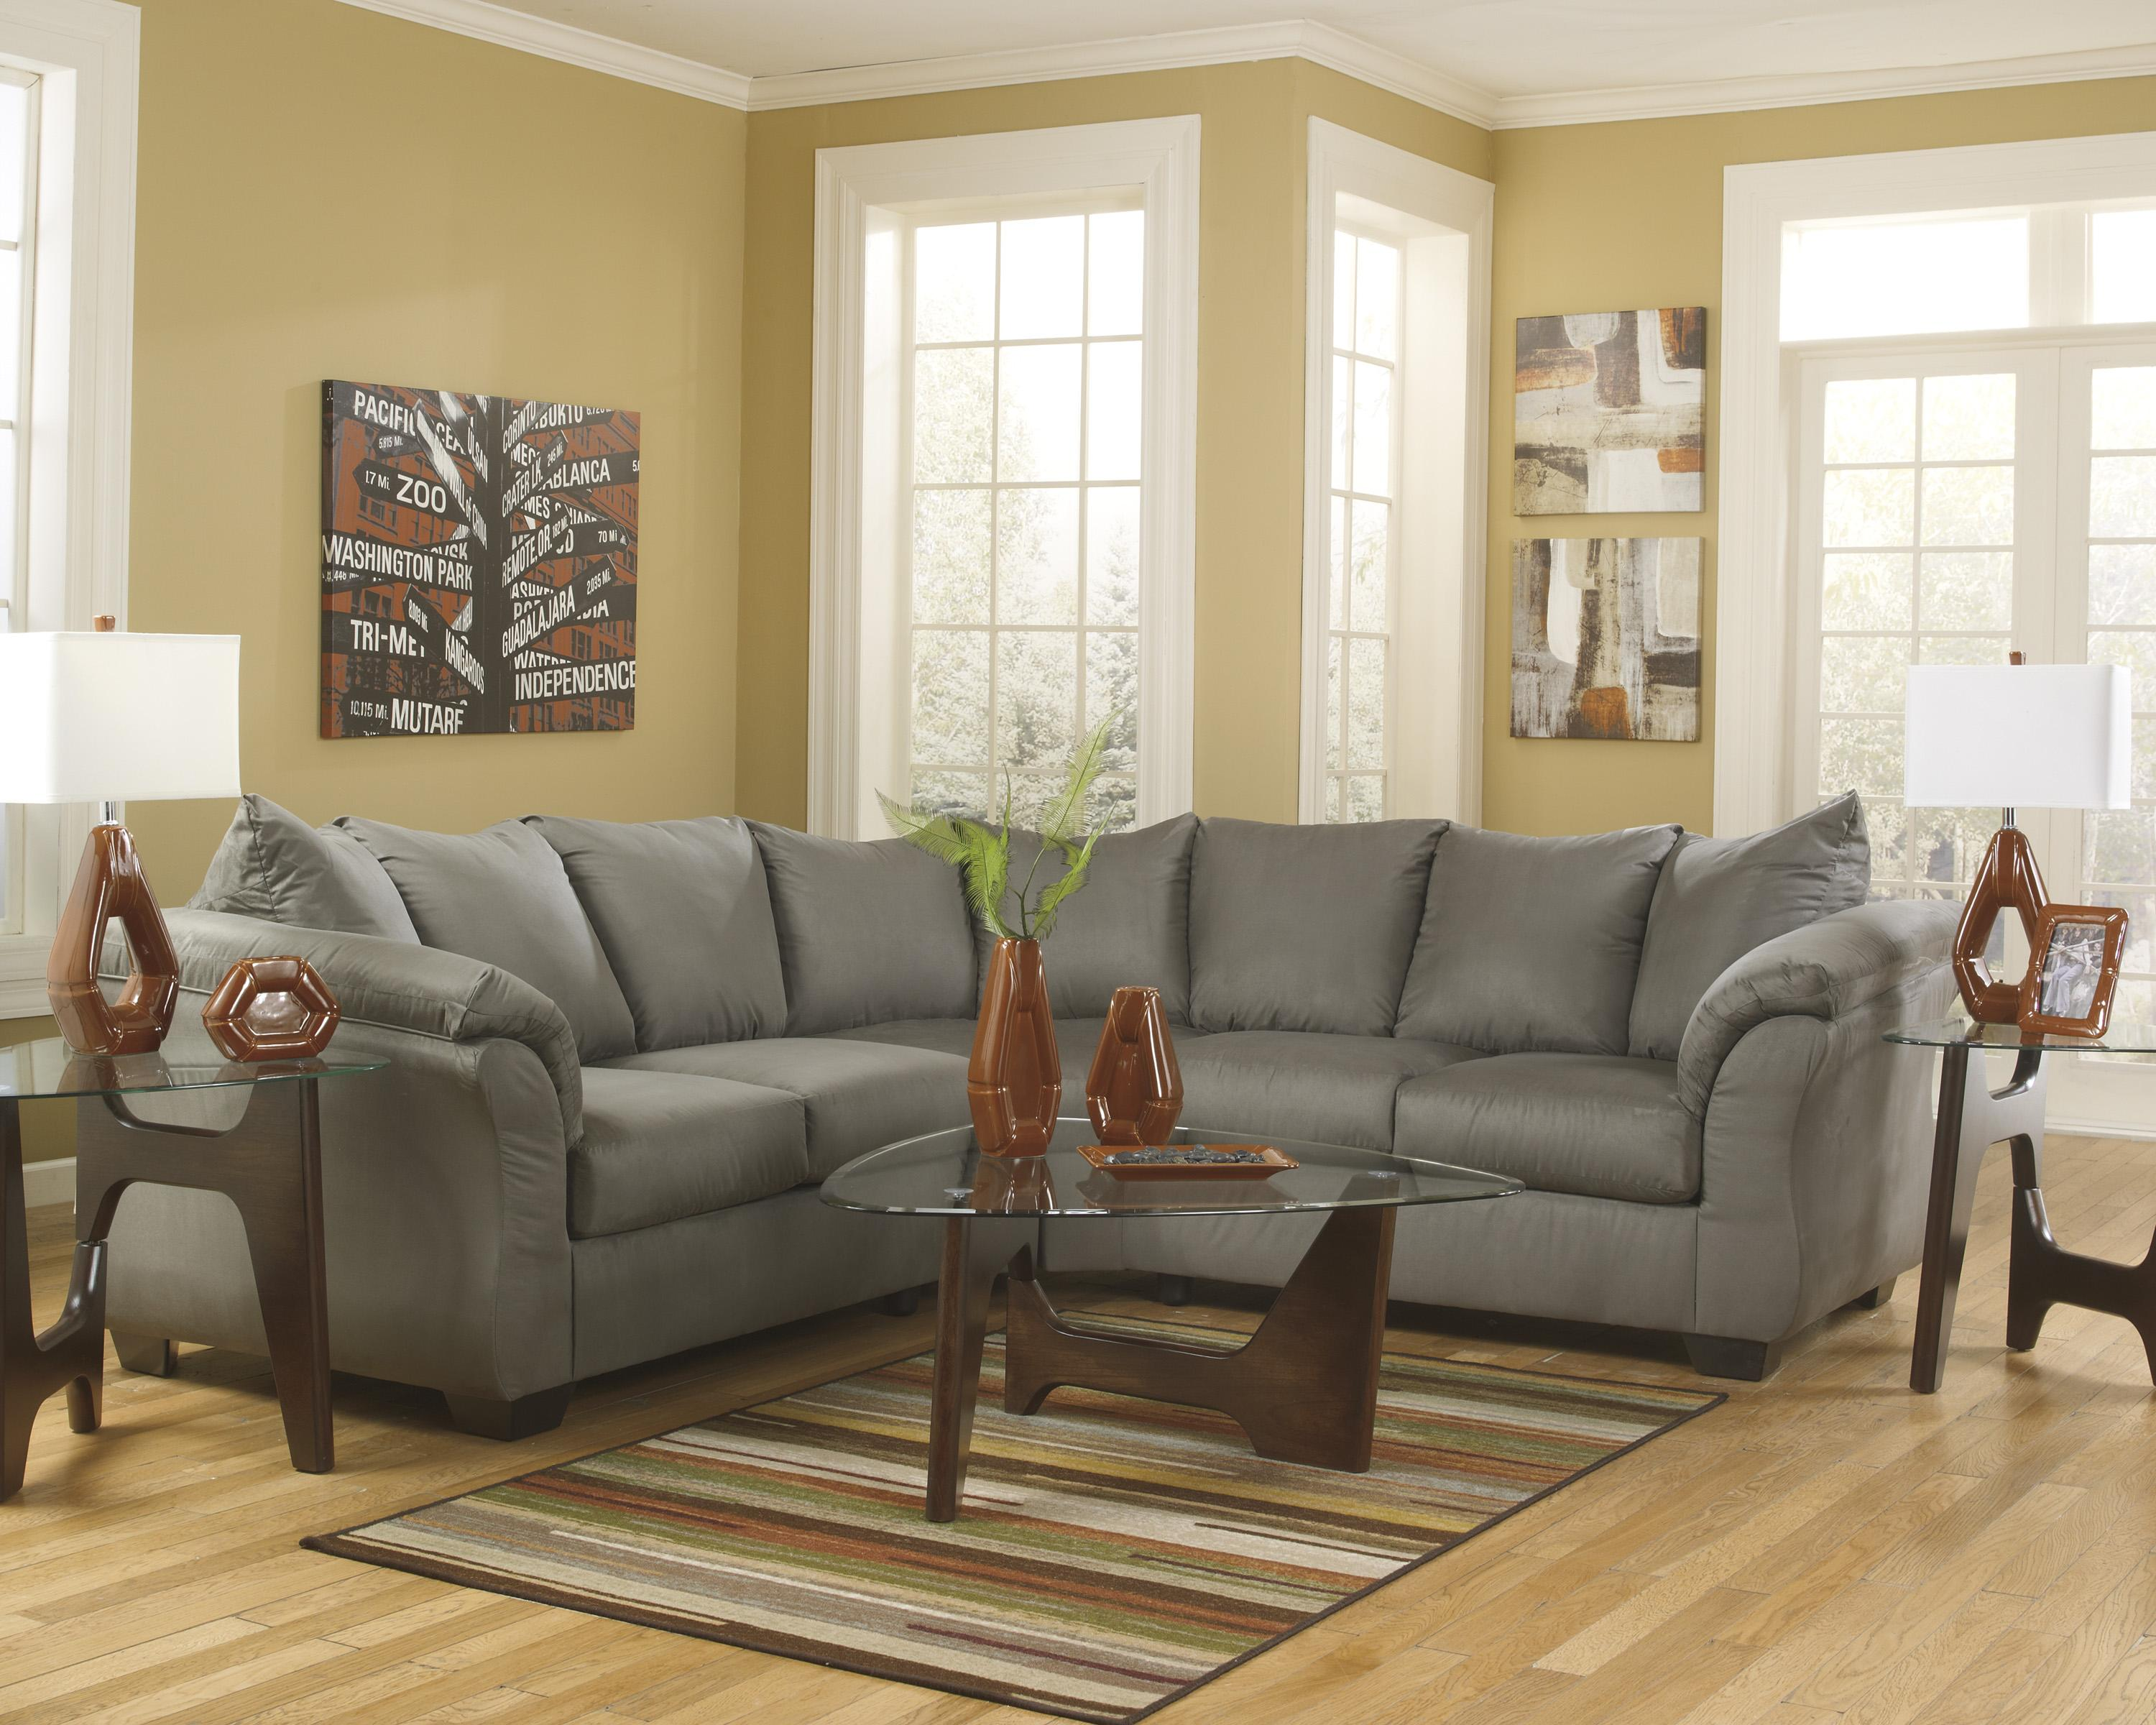 Sofa Outlets Exeter Contemporary Sectional Sofa With Sweeping Pillow Arms By Signature